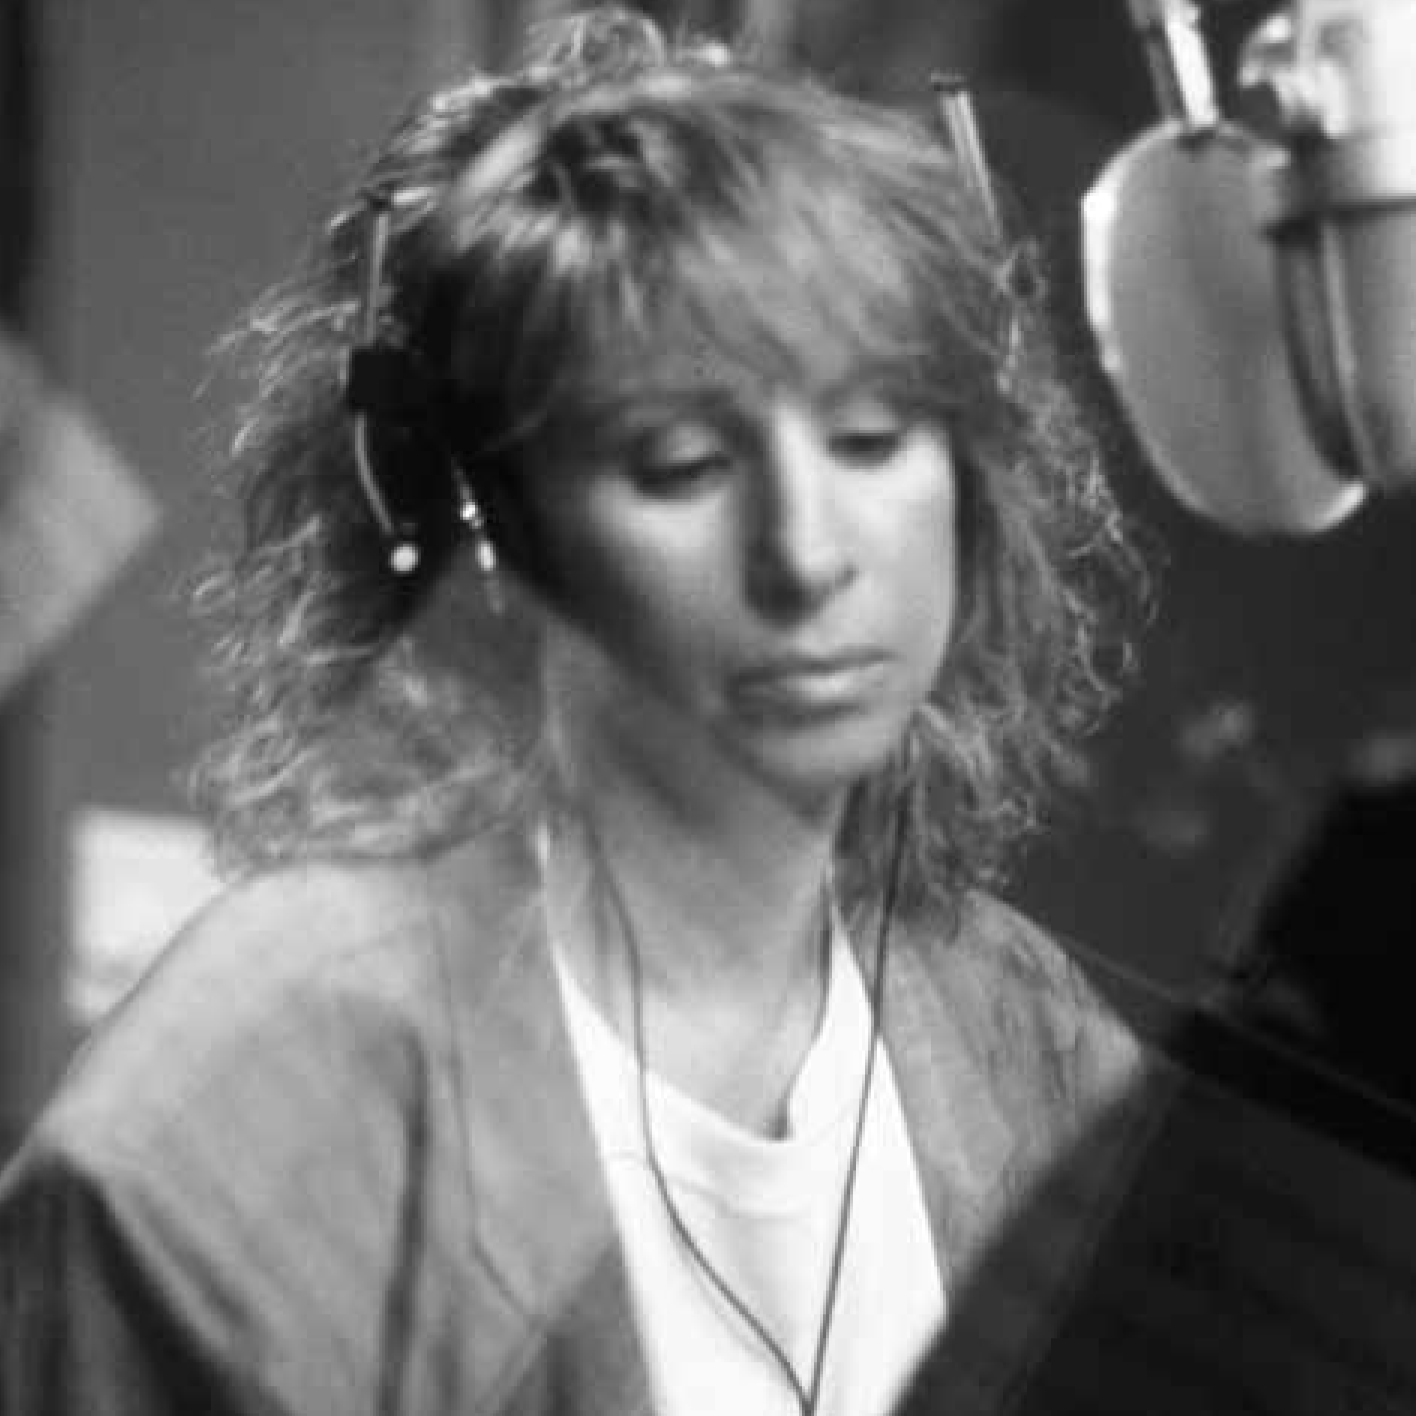 EXCLUSIVE: Listen to Barbra Streisand's Previously Unreleased 'Home'